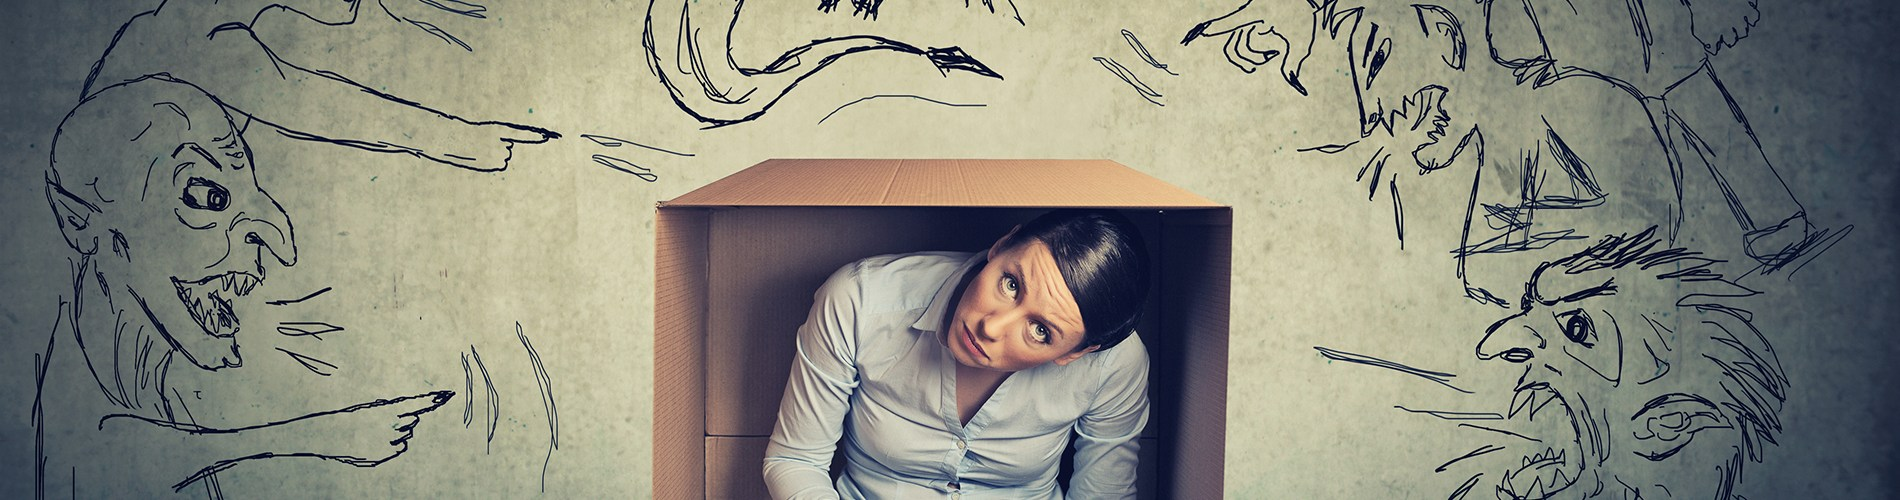 Woman typing, trapped in box by monstrous drawings